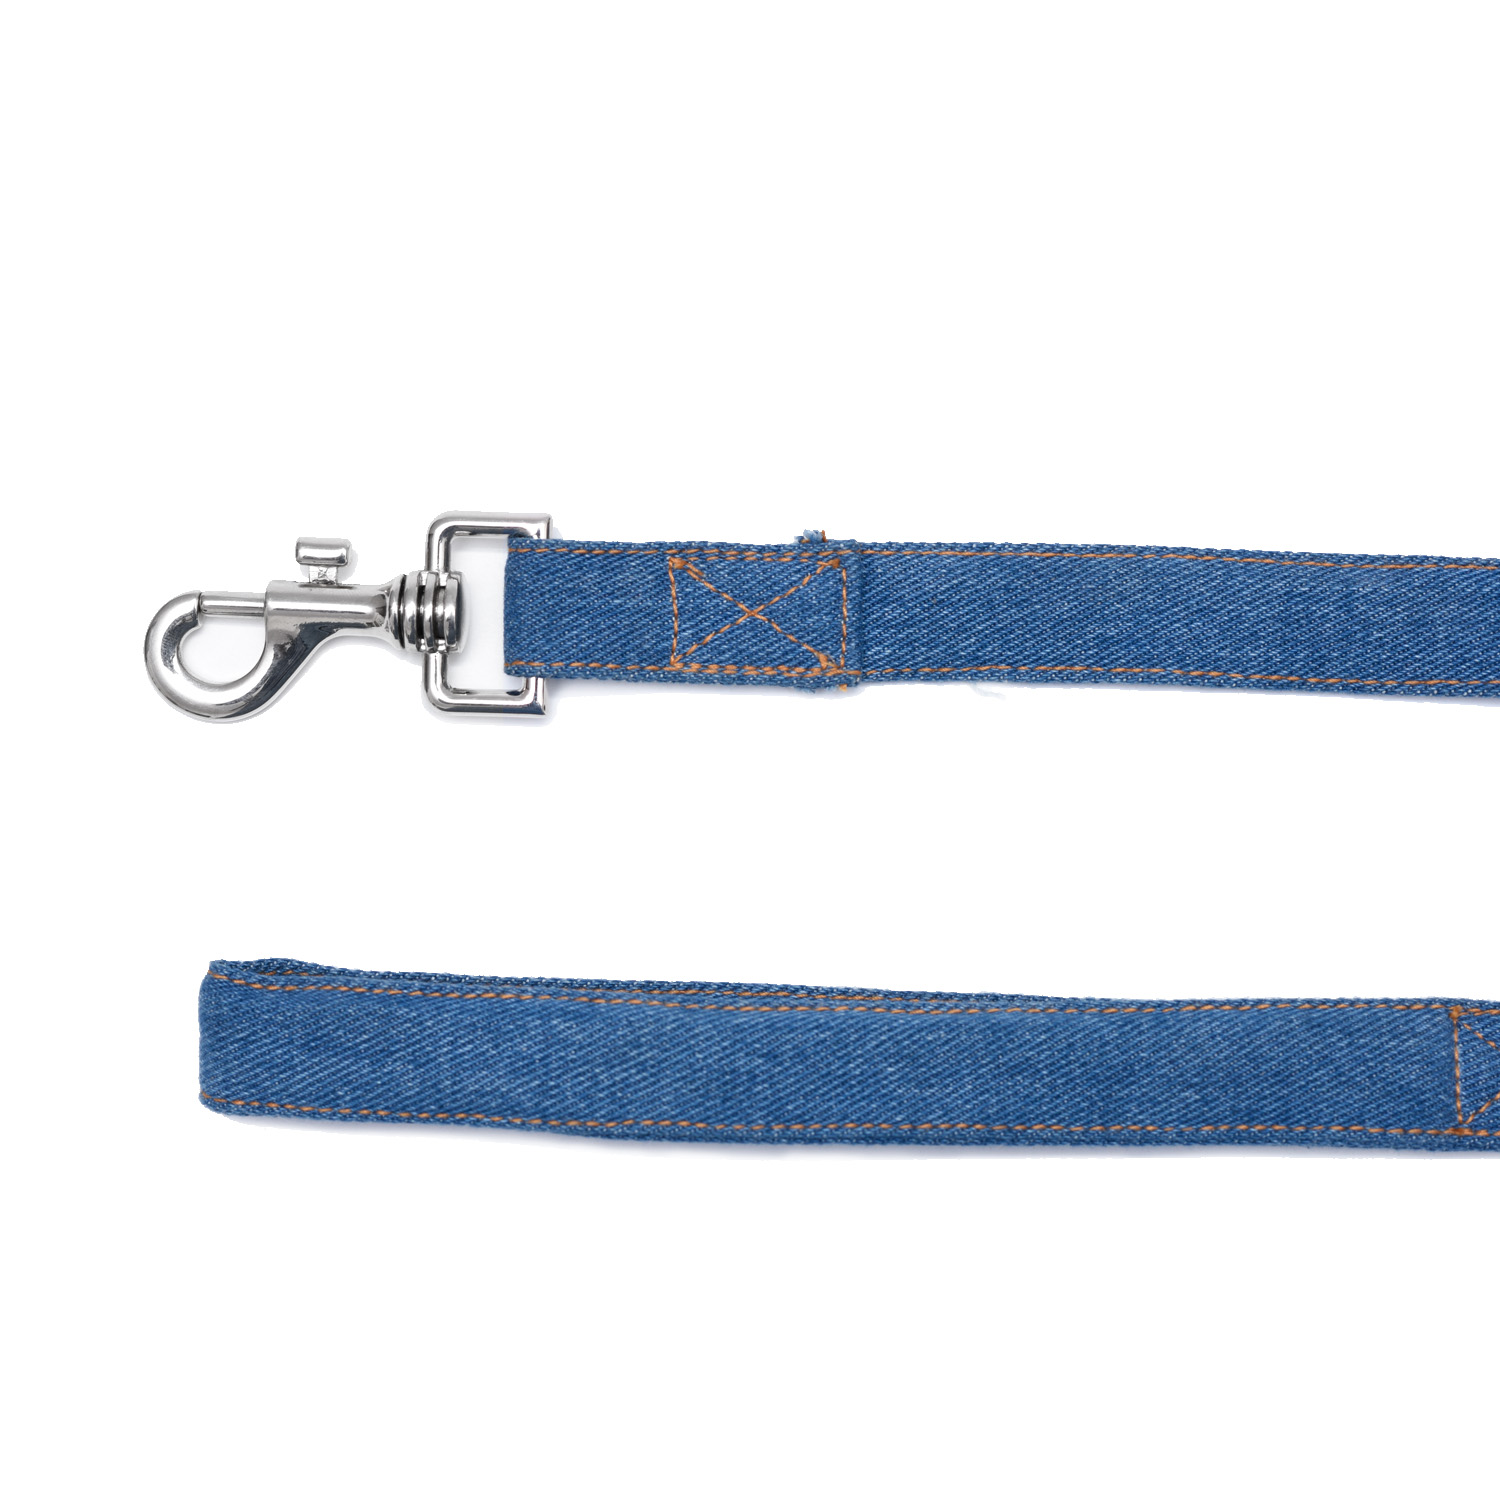 Mutt Of Course Stud Muffin Dark Denim Leash - Large